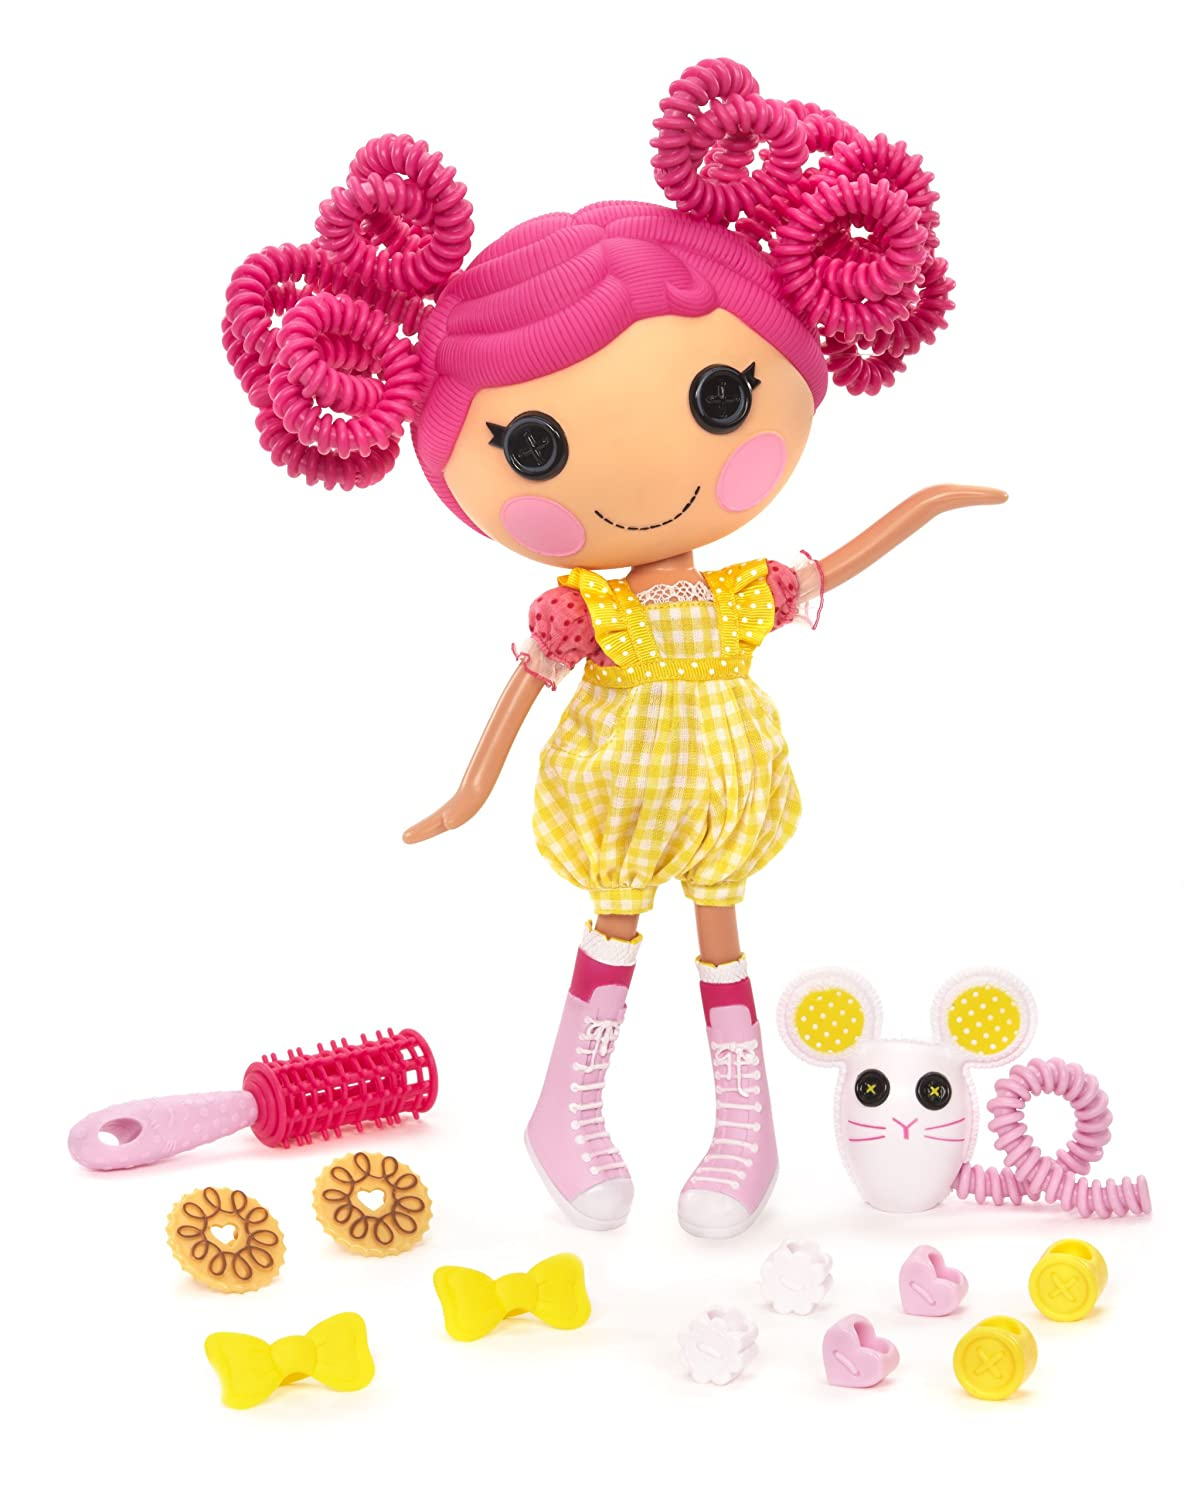 MGA Entertainment 506645E4C - Lalaloopsy Frisurenspaß Crumbs Sugar Cookie